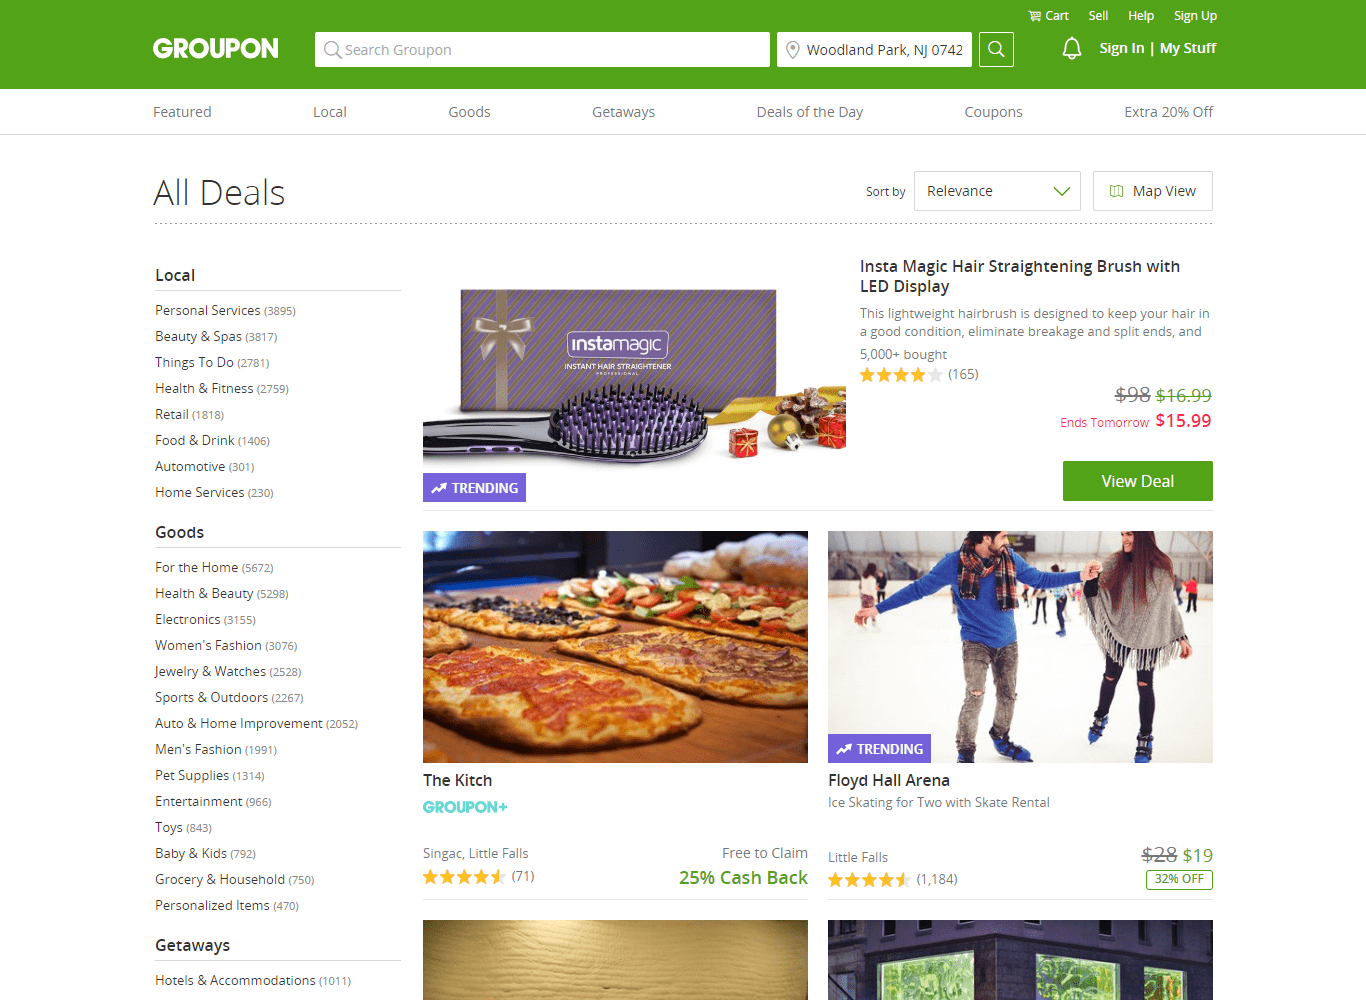 Groupon Review: How Does Groupon Work?